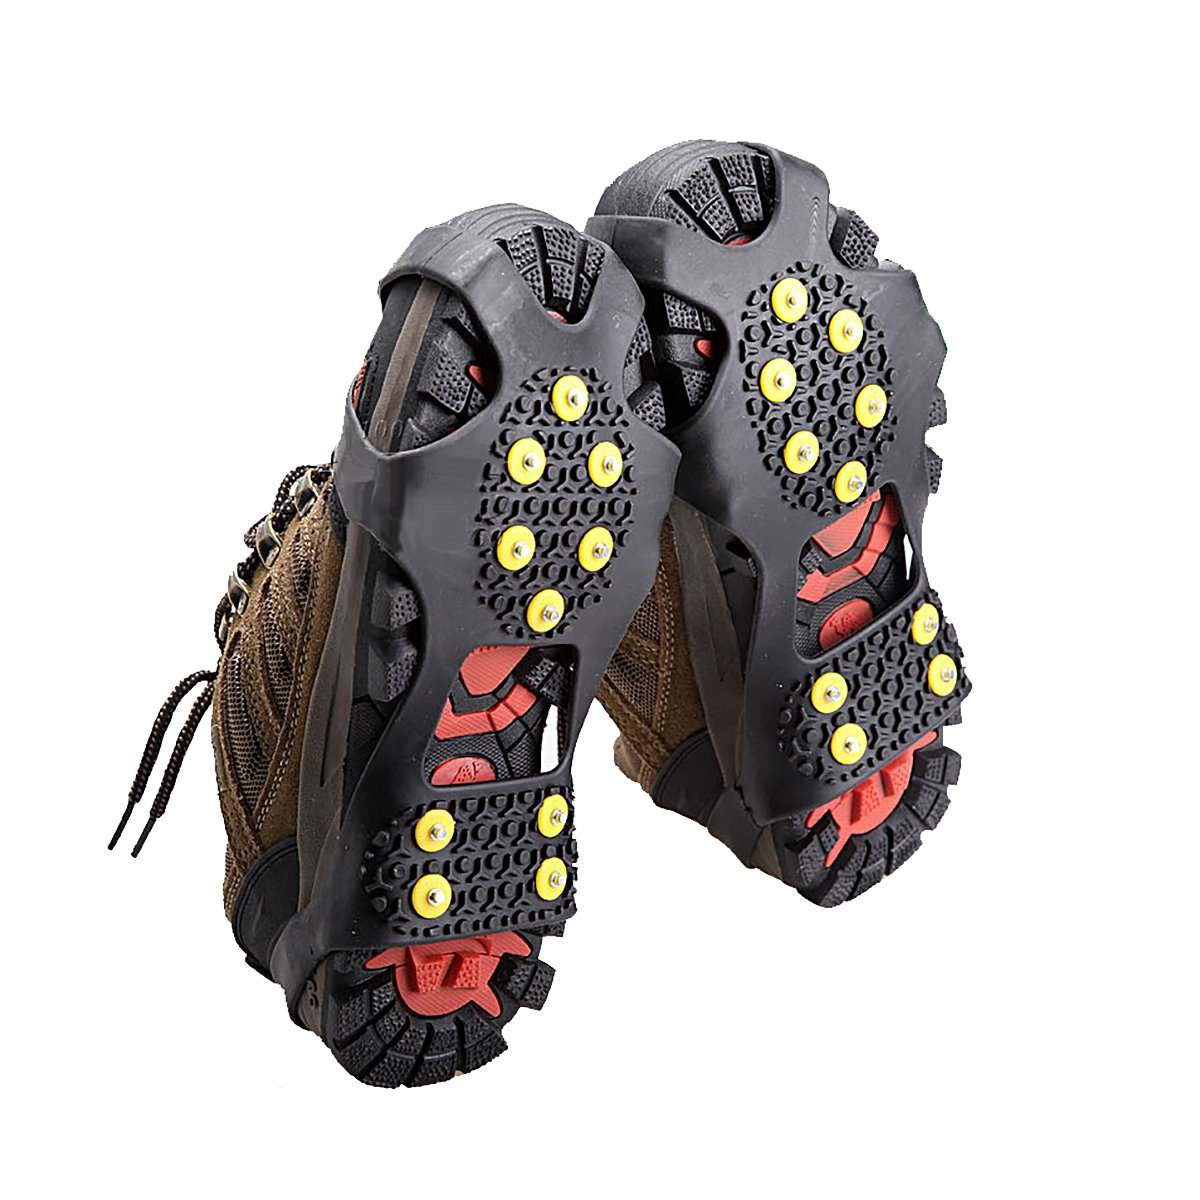 Ice Grippers - Black Ice Cleats, Ice Grips Traction Cleats Grippers Non-slip Over Shoe/Boot Rubber Spikes Crampons Anti Easy Slip 10 Steel Studs Crampons Slip-on Stretch Footwear She-Lin